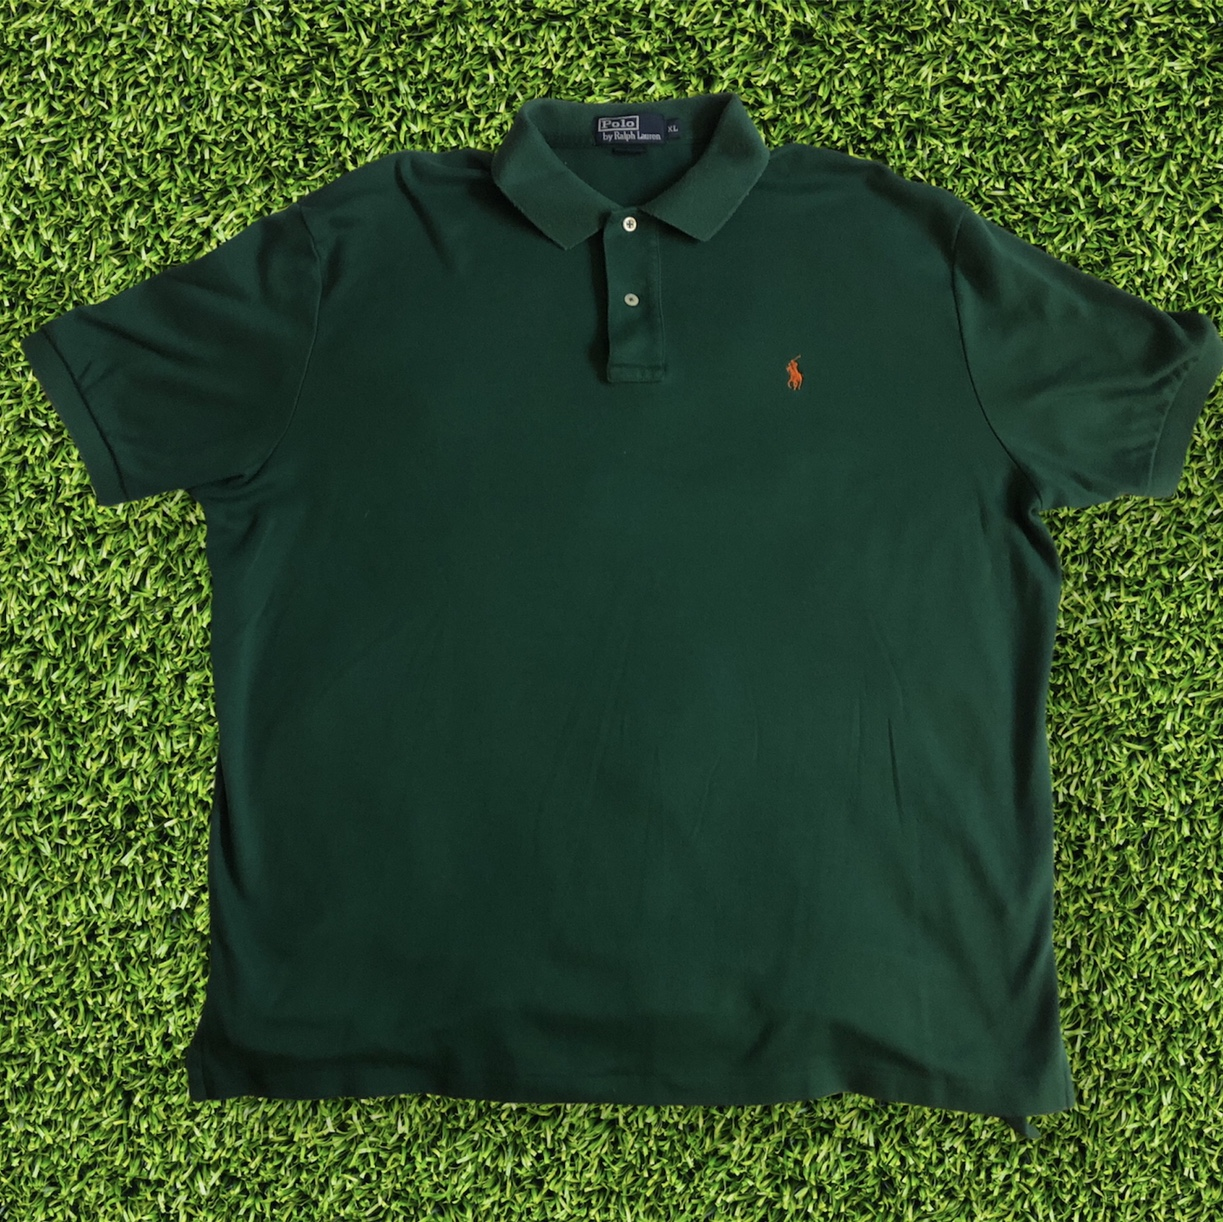 Product Image 1 - Green polo by Ralph Lauren